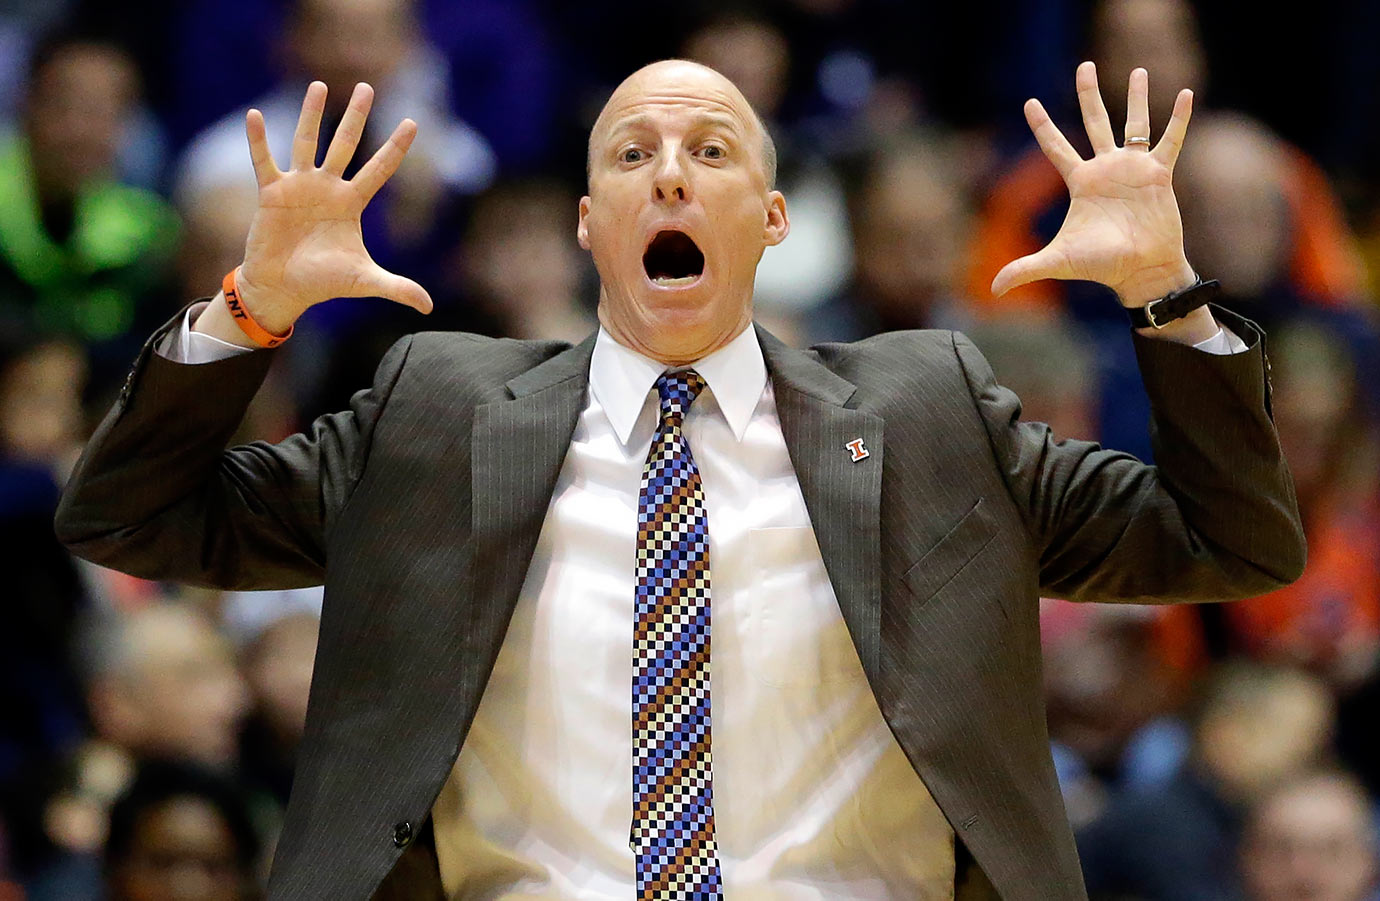 Illinois head coach John Groce reacts as he watches his team during the first half of their game against Northwestern in Evanston, Ill.